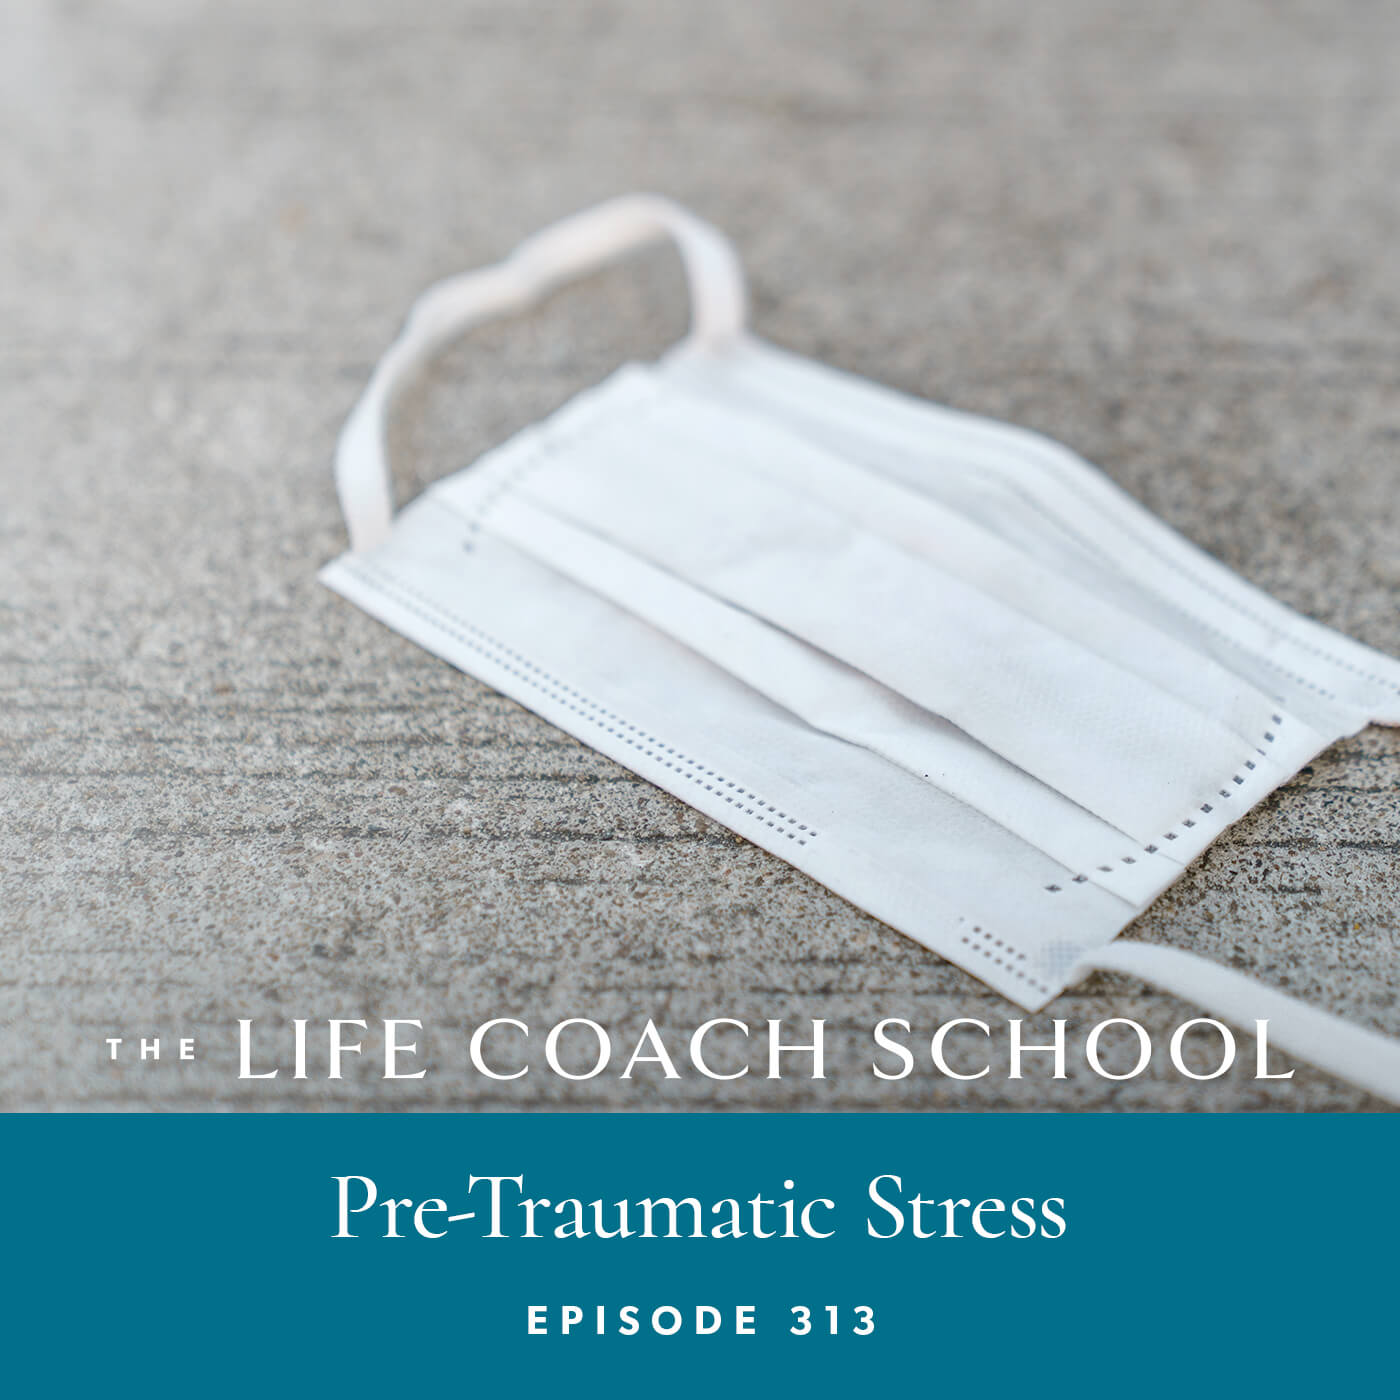 The Life Coach School Podcast with Brooke Castillo | Episode 313 | Pre-Traumatic Stress